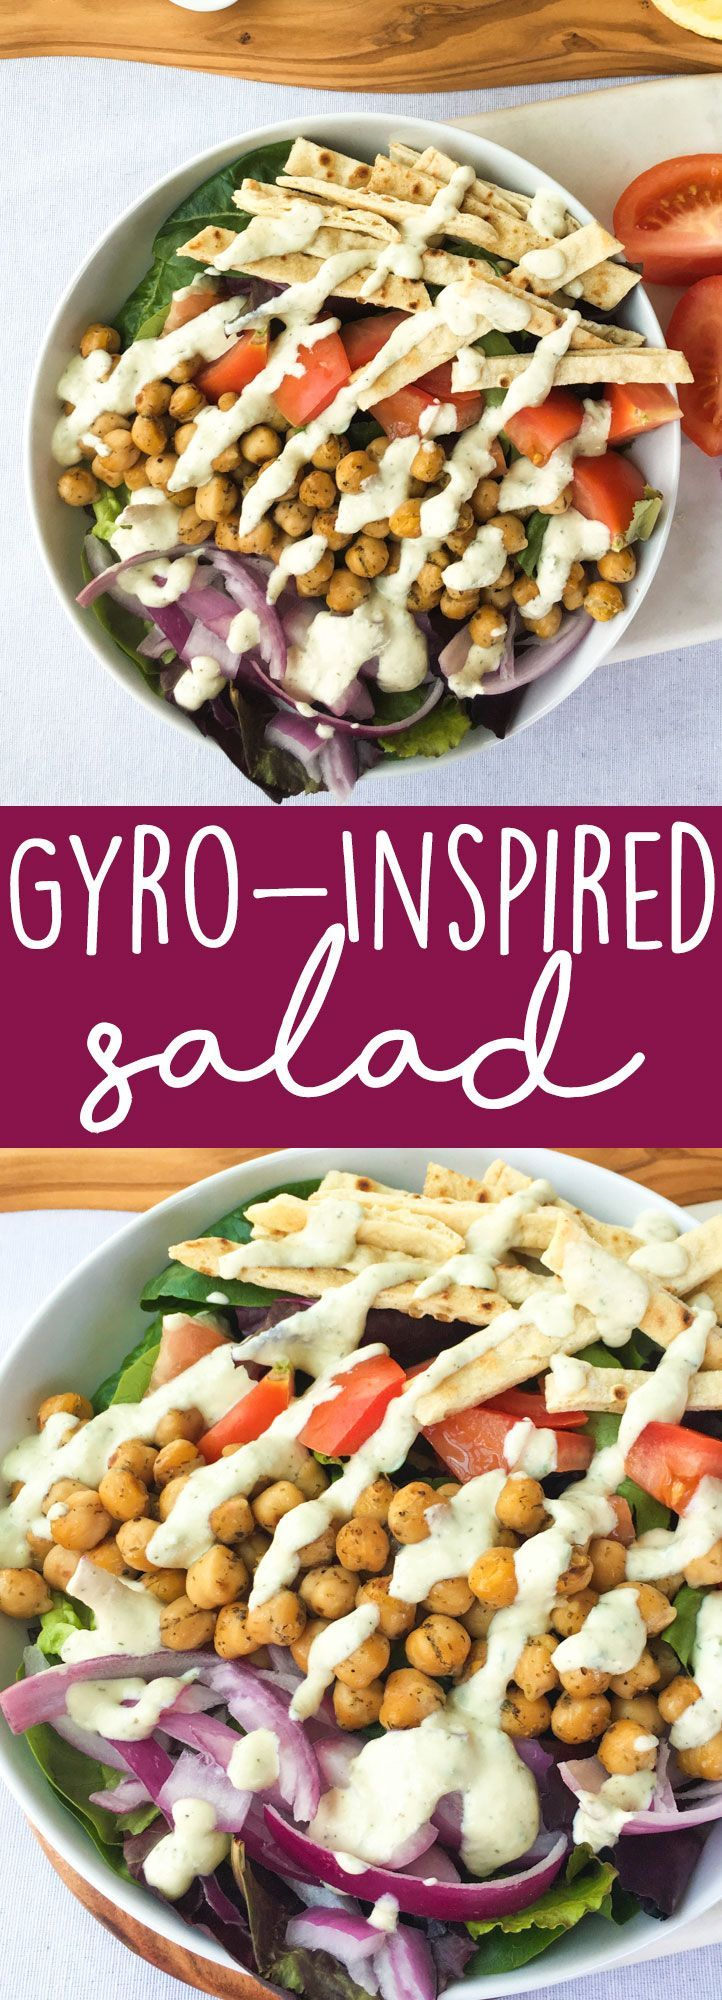 Vegan Gyro Salad Recipe: This veggie-packed gyro-inspired salad is topped with greek-spiced chickpeas, crispy baked flatbread strips for crunch, and a creamy vegan tzatziki sauce. What more could you ask for from a healthy salad recipe?!